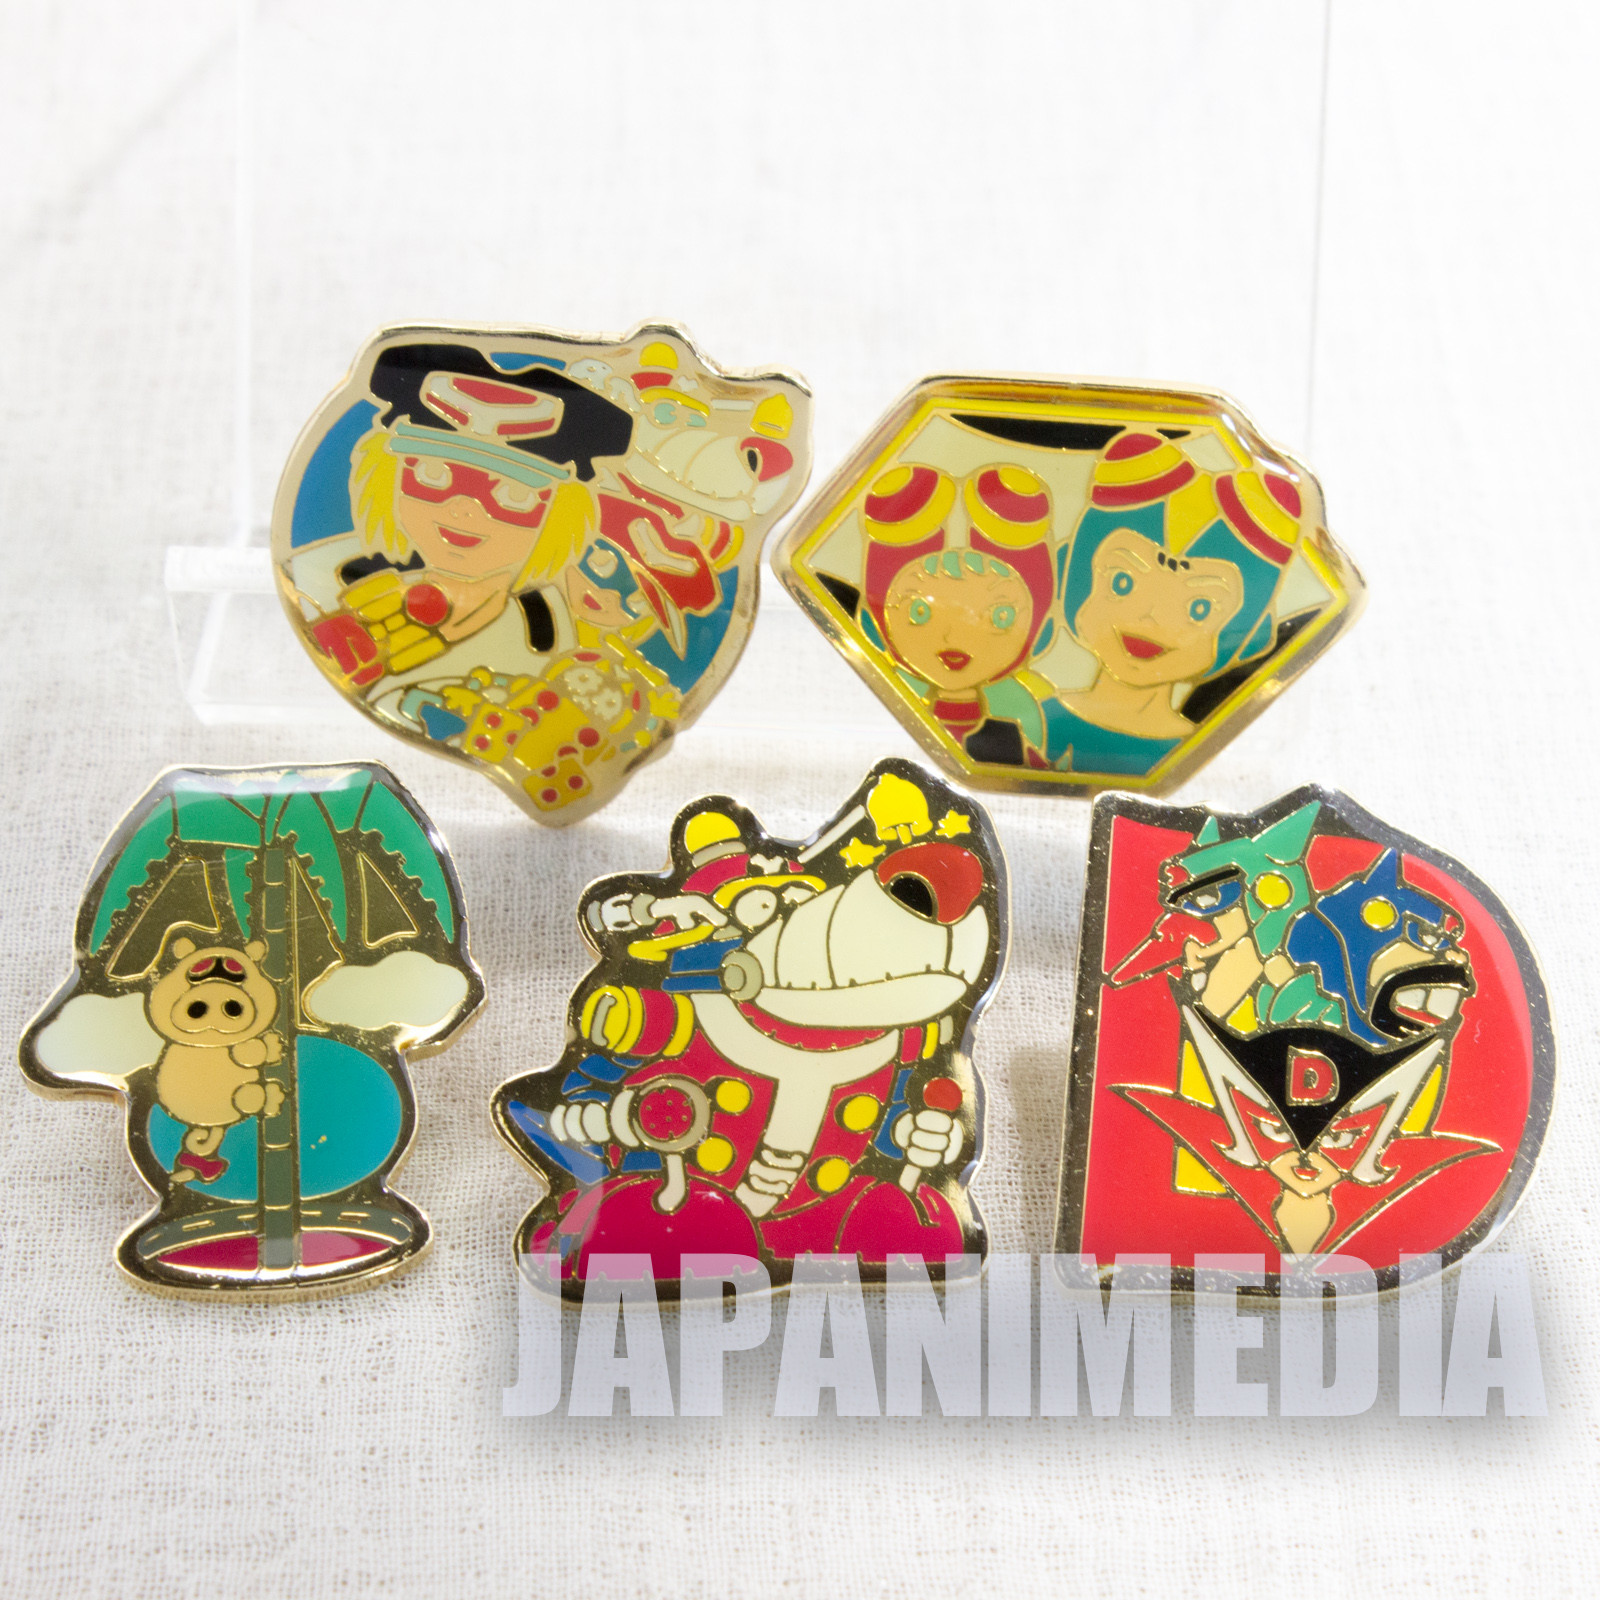 Time Bokan Yatterman Metal Pins 5pc Set Tatsunoko Production JAPAN ANIME